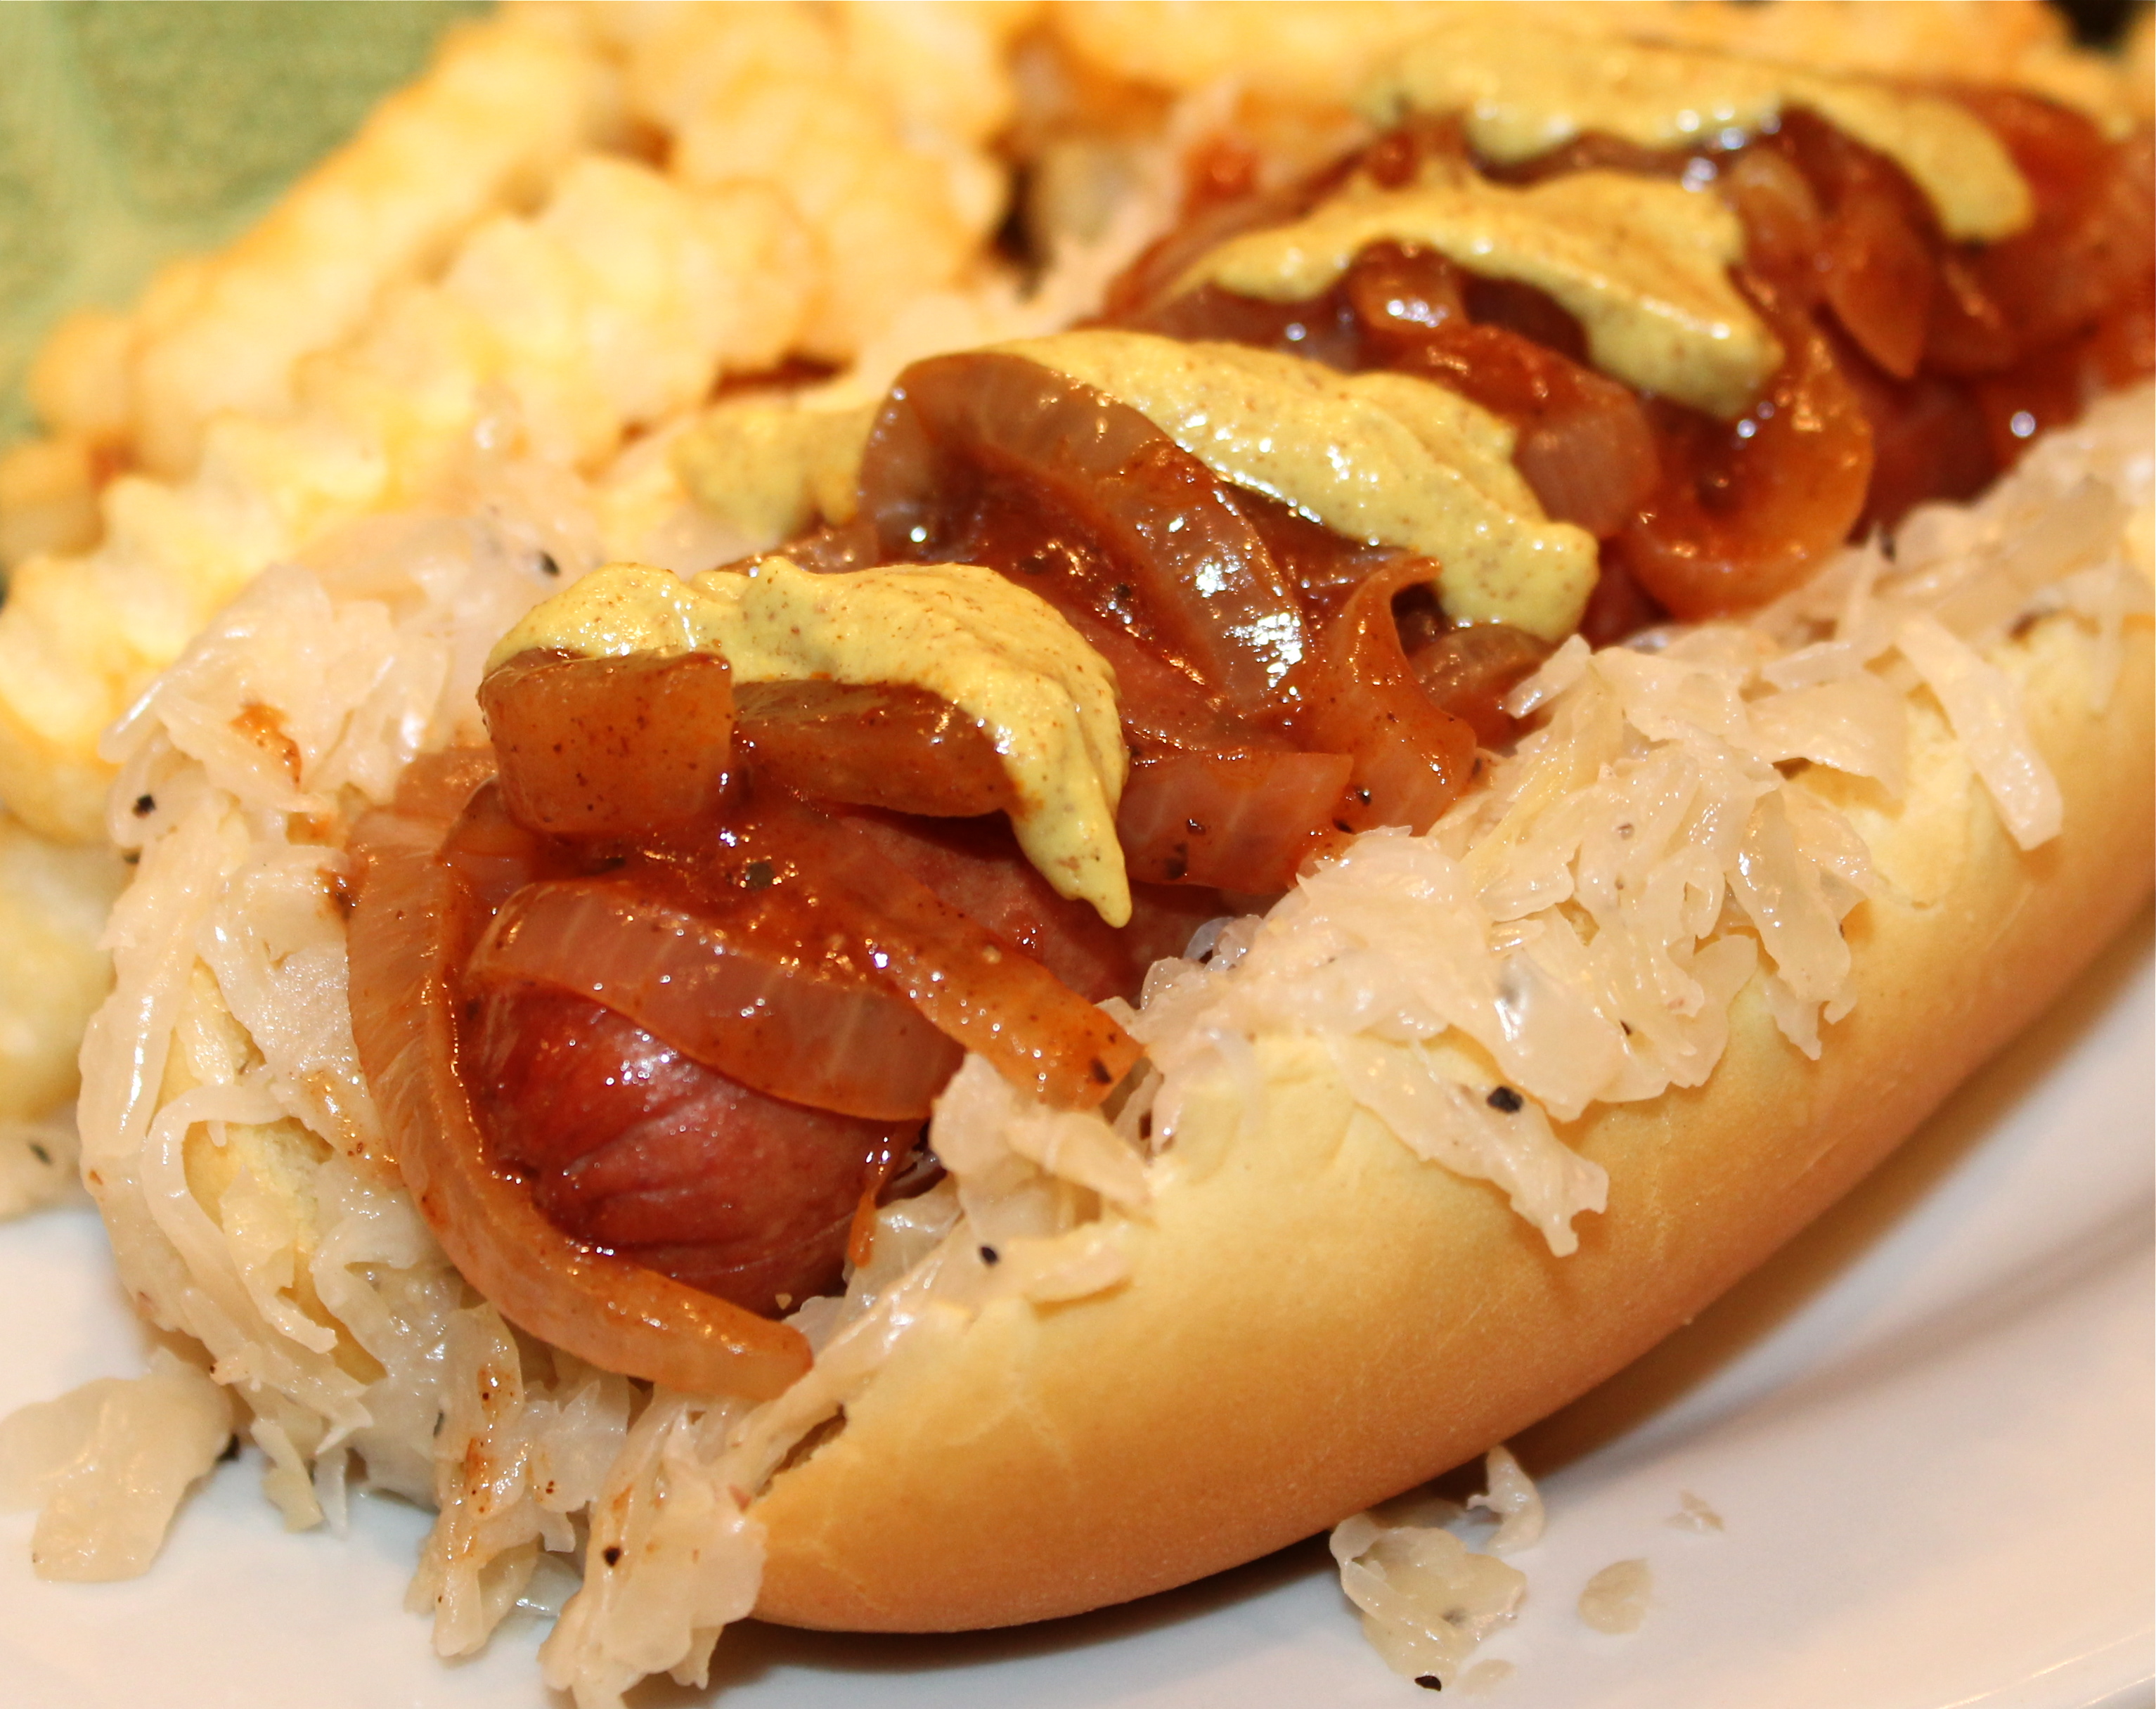 Hot Dogs With Mustard And Relish Song